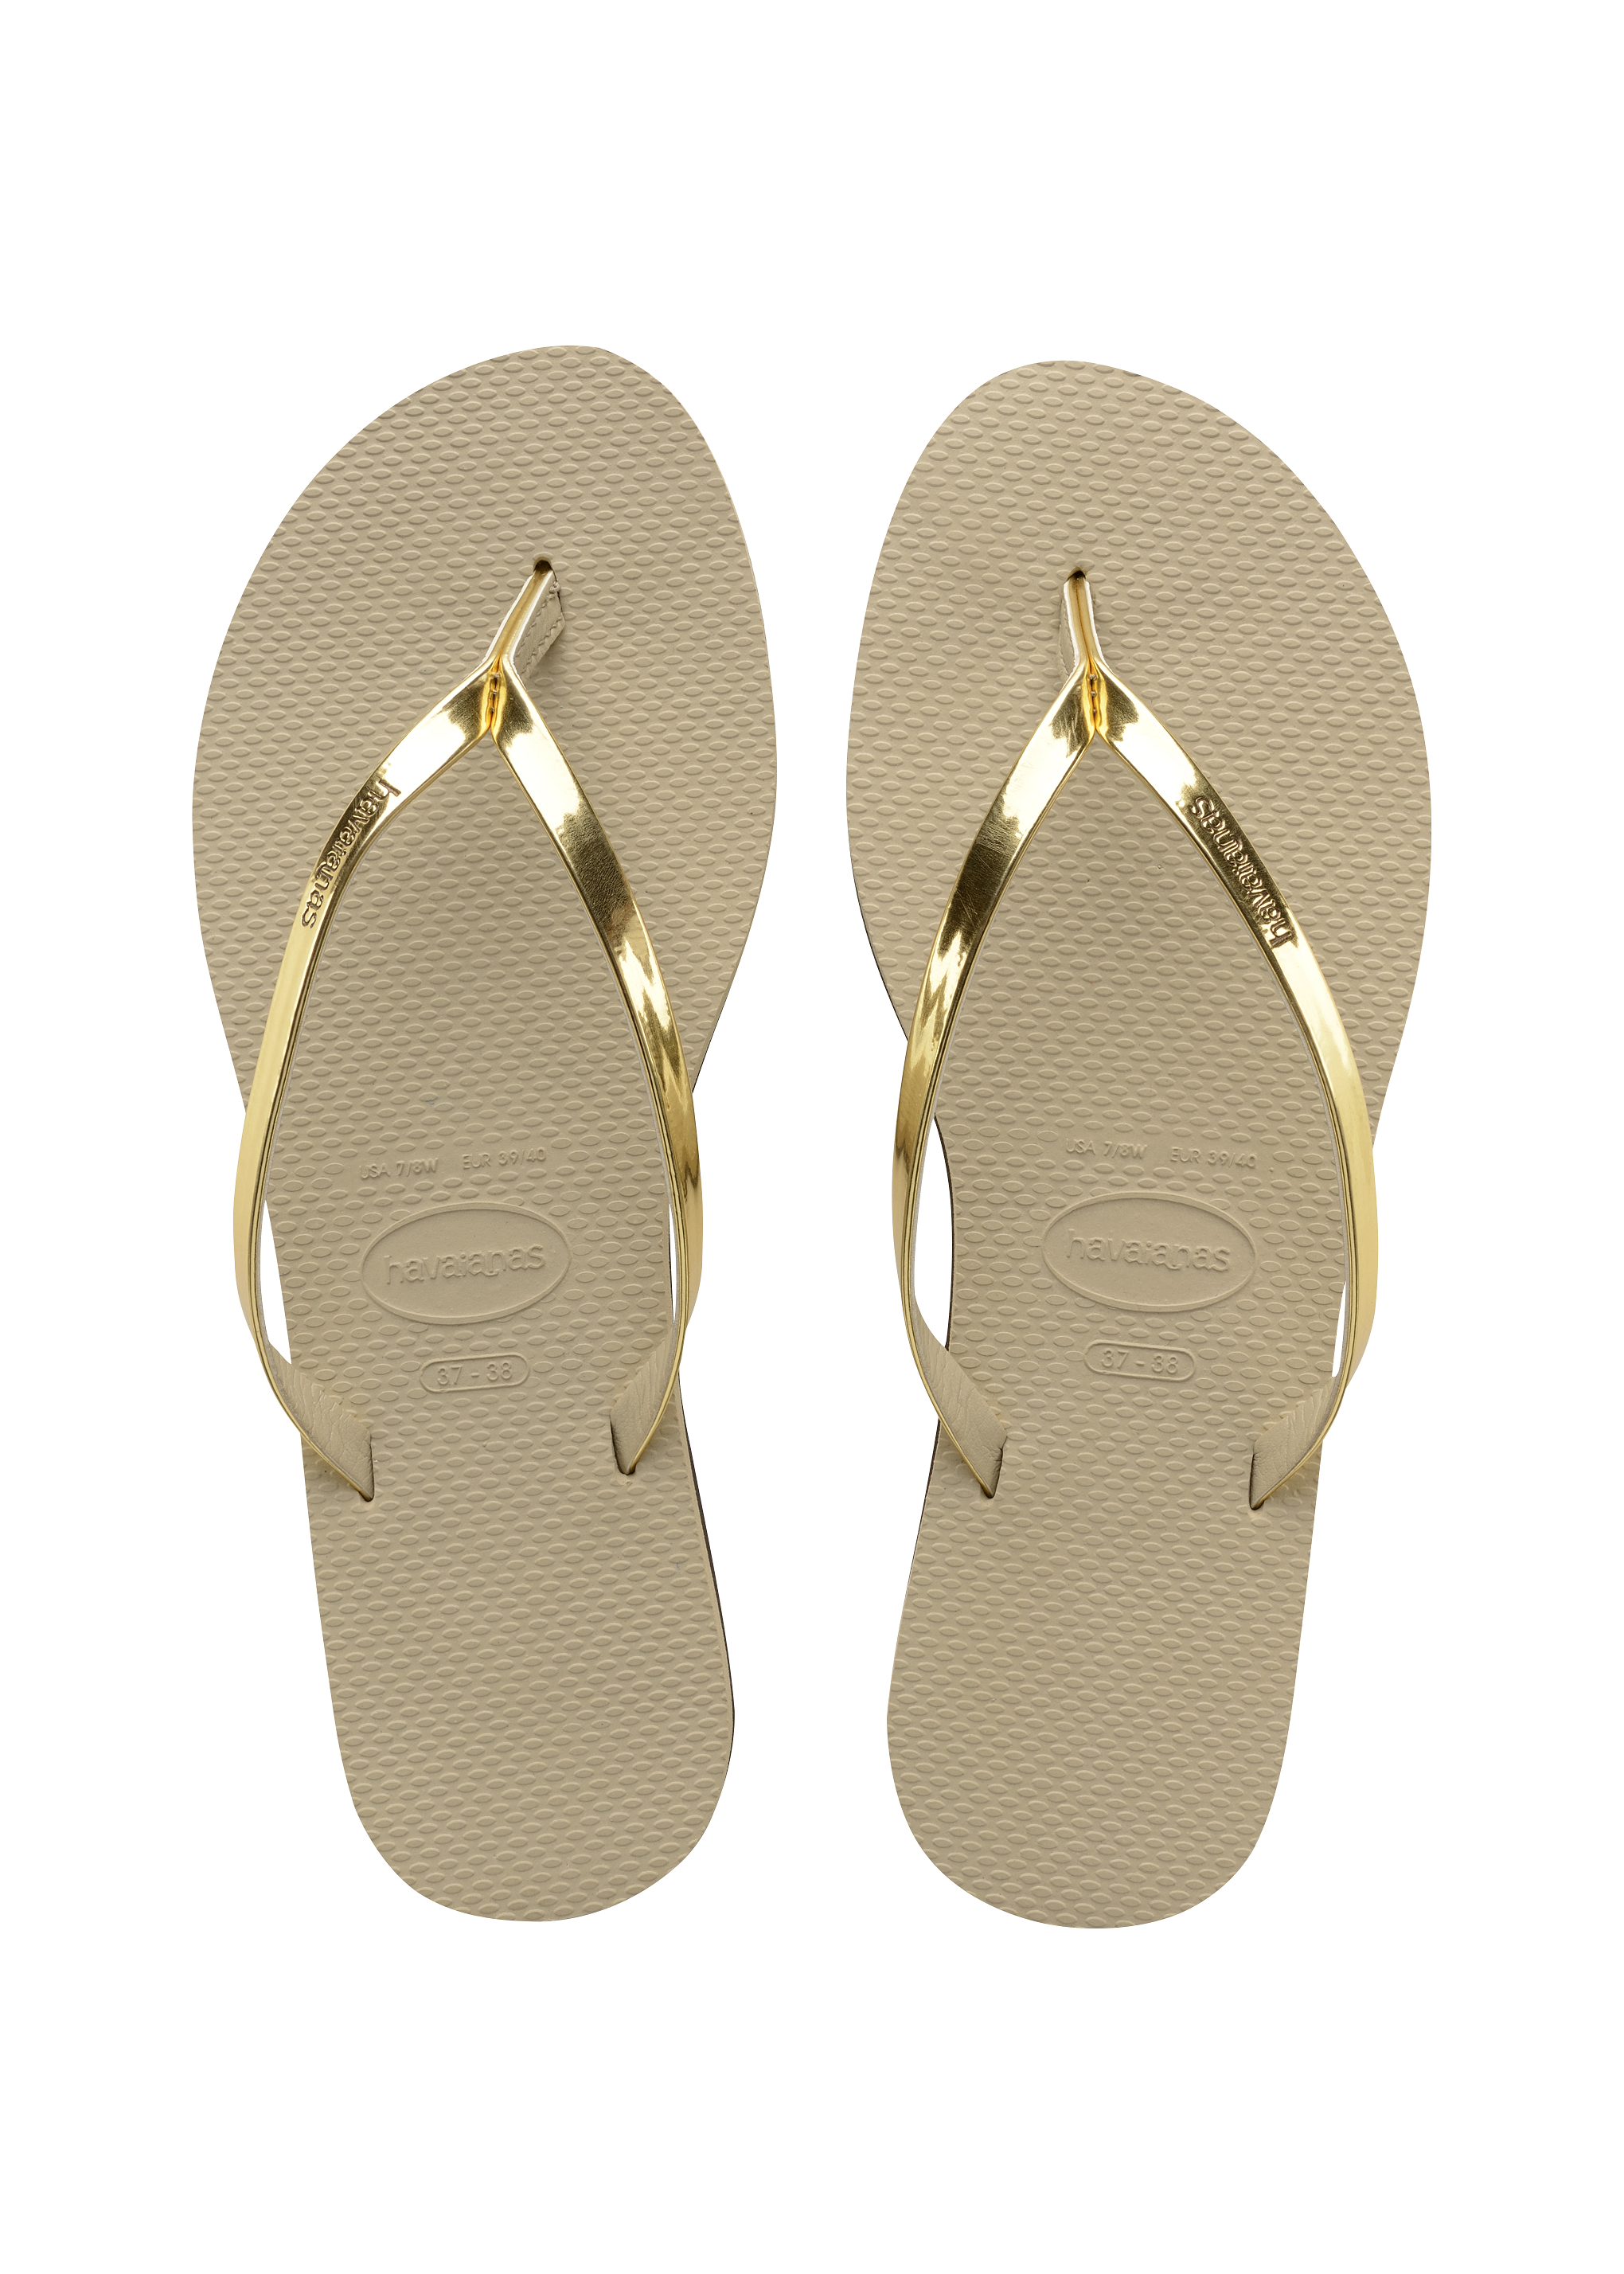 095e8ca6e017d Havaianas You Metallic Sandal Sand Grey Light Gold Price From  50